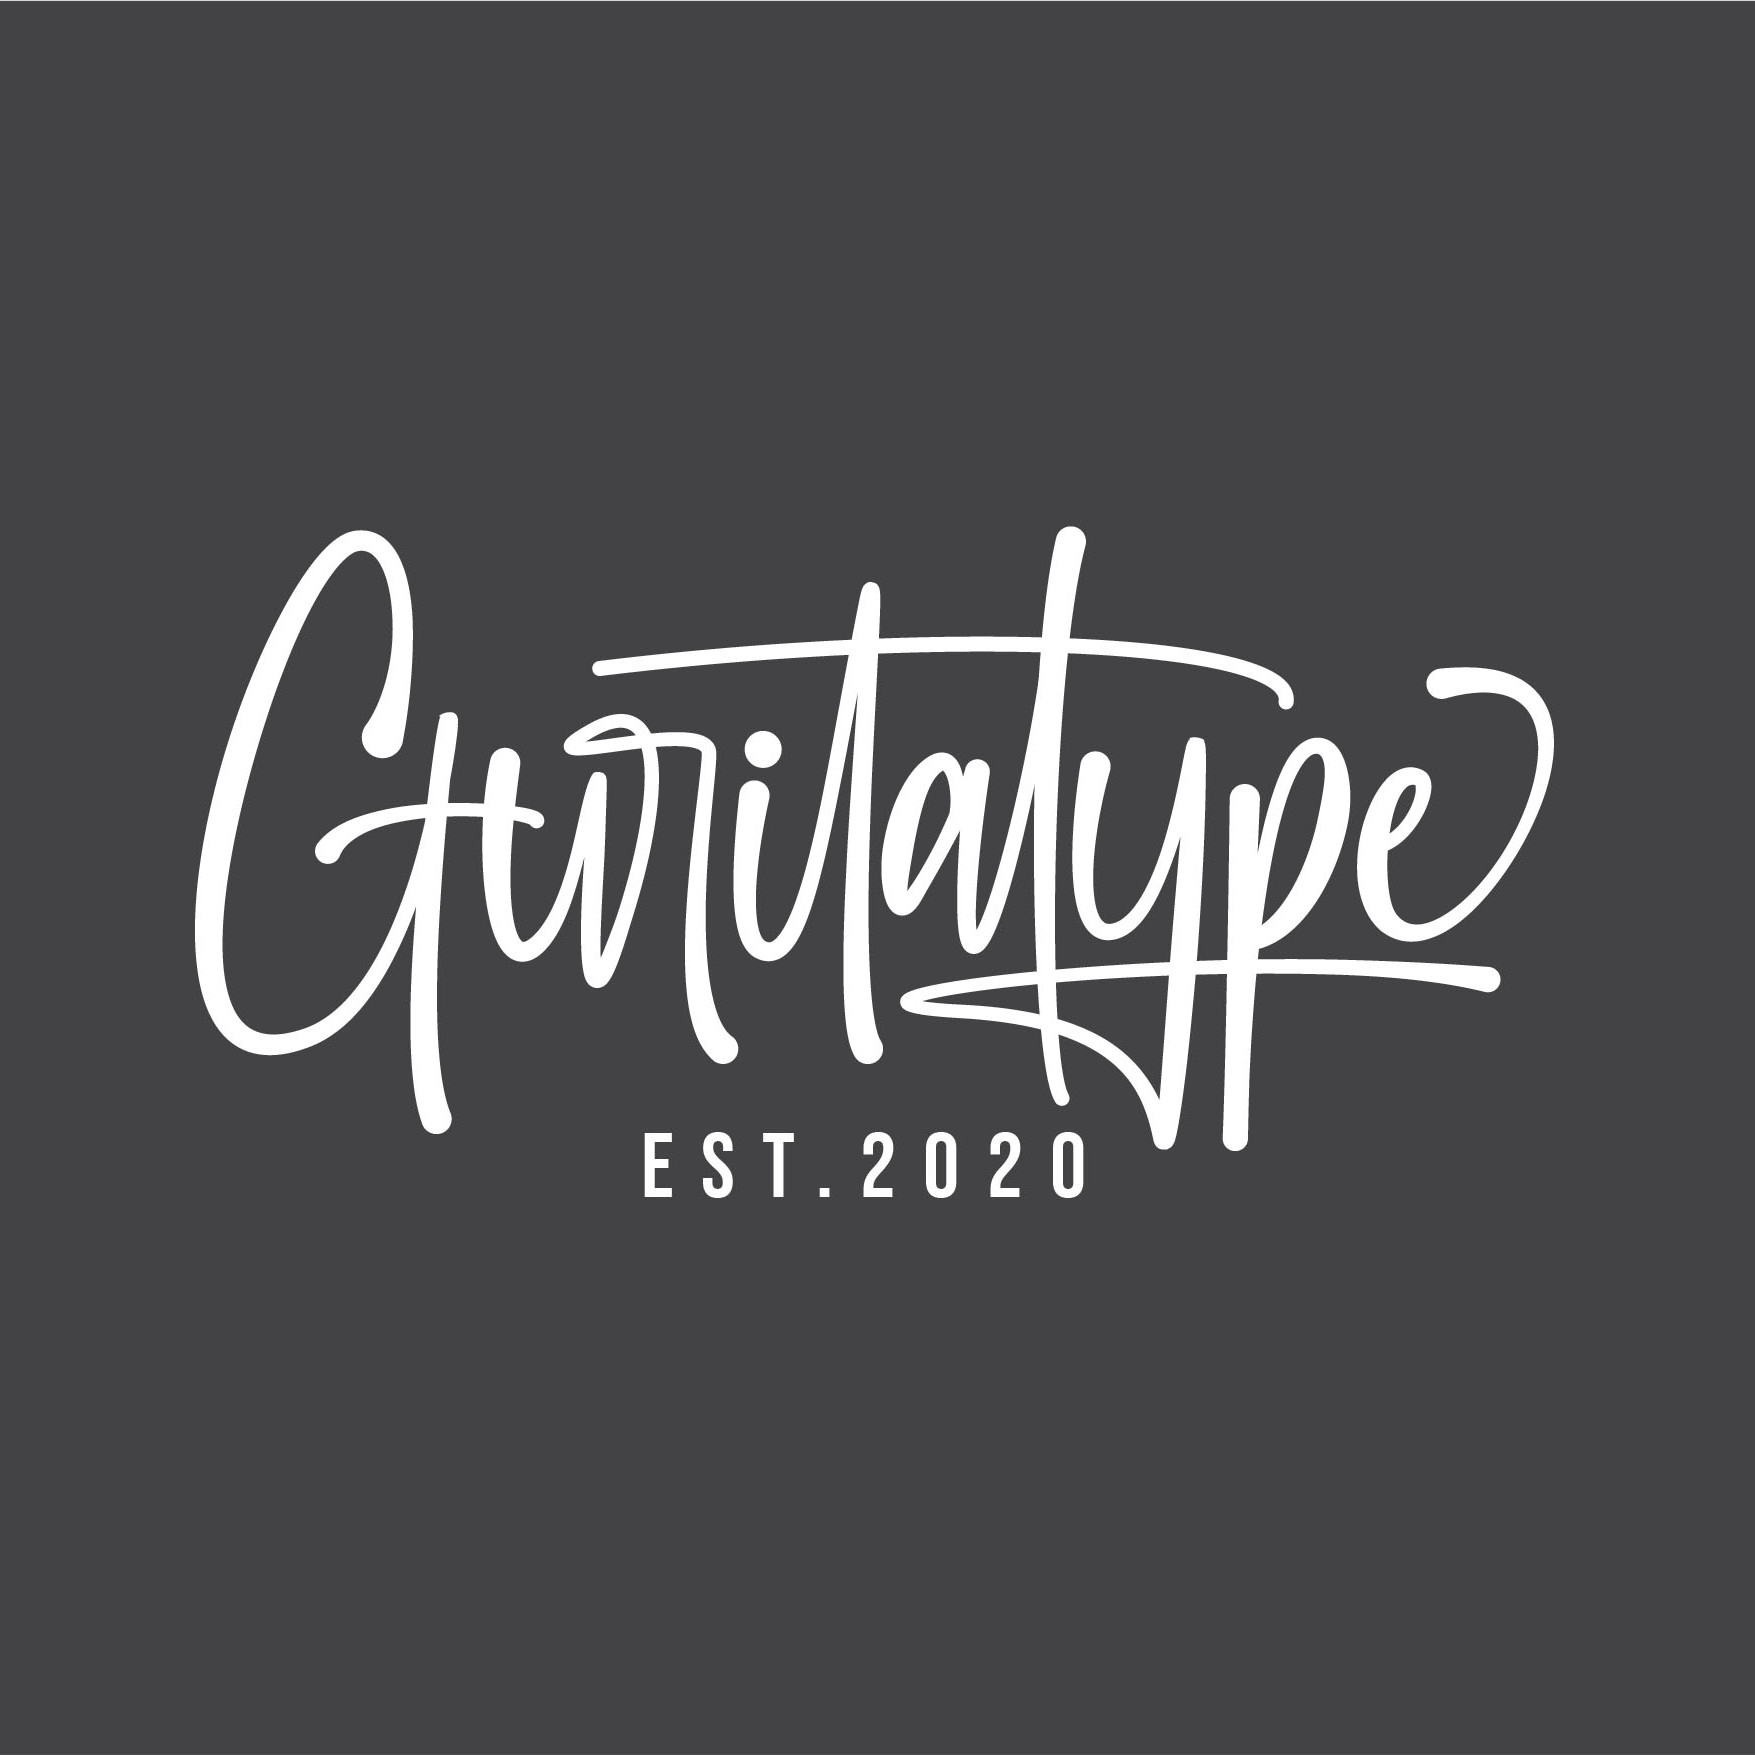 Guritatype's profile picture